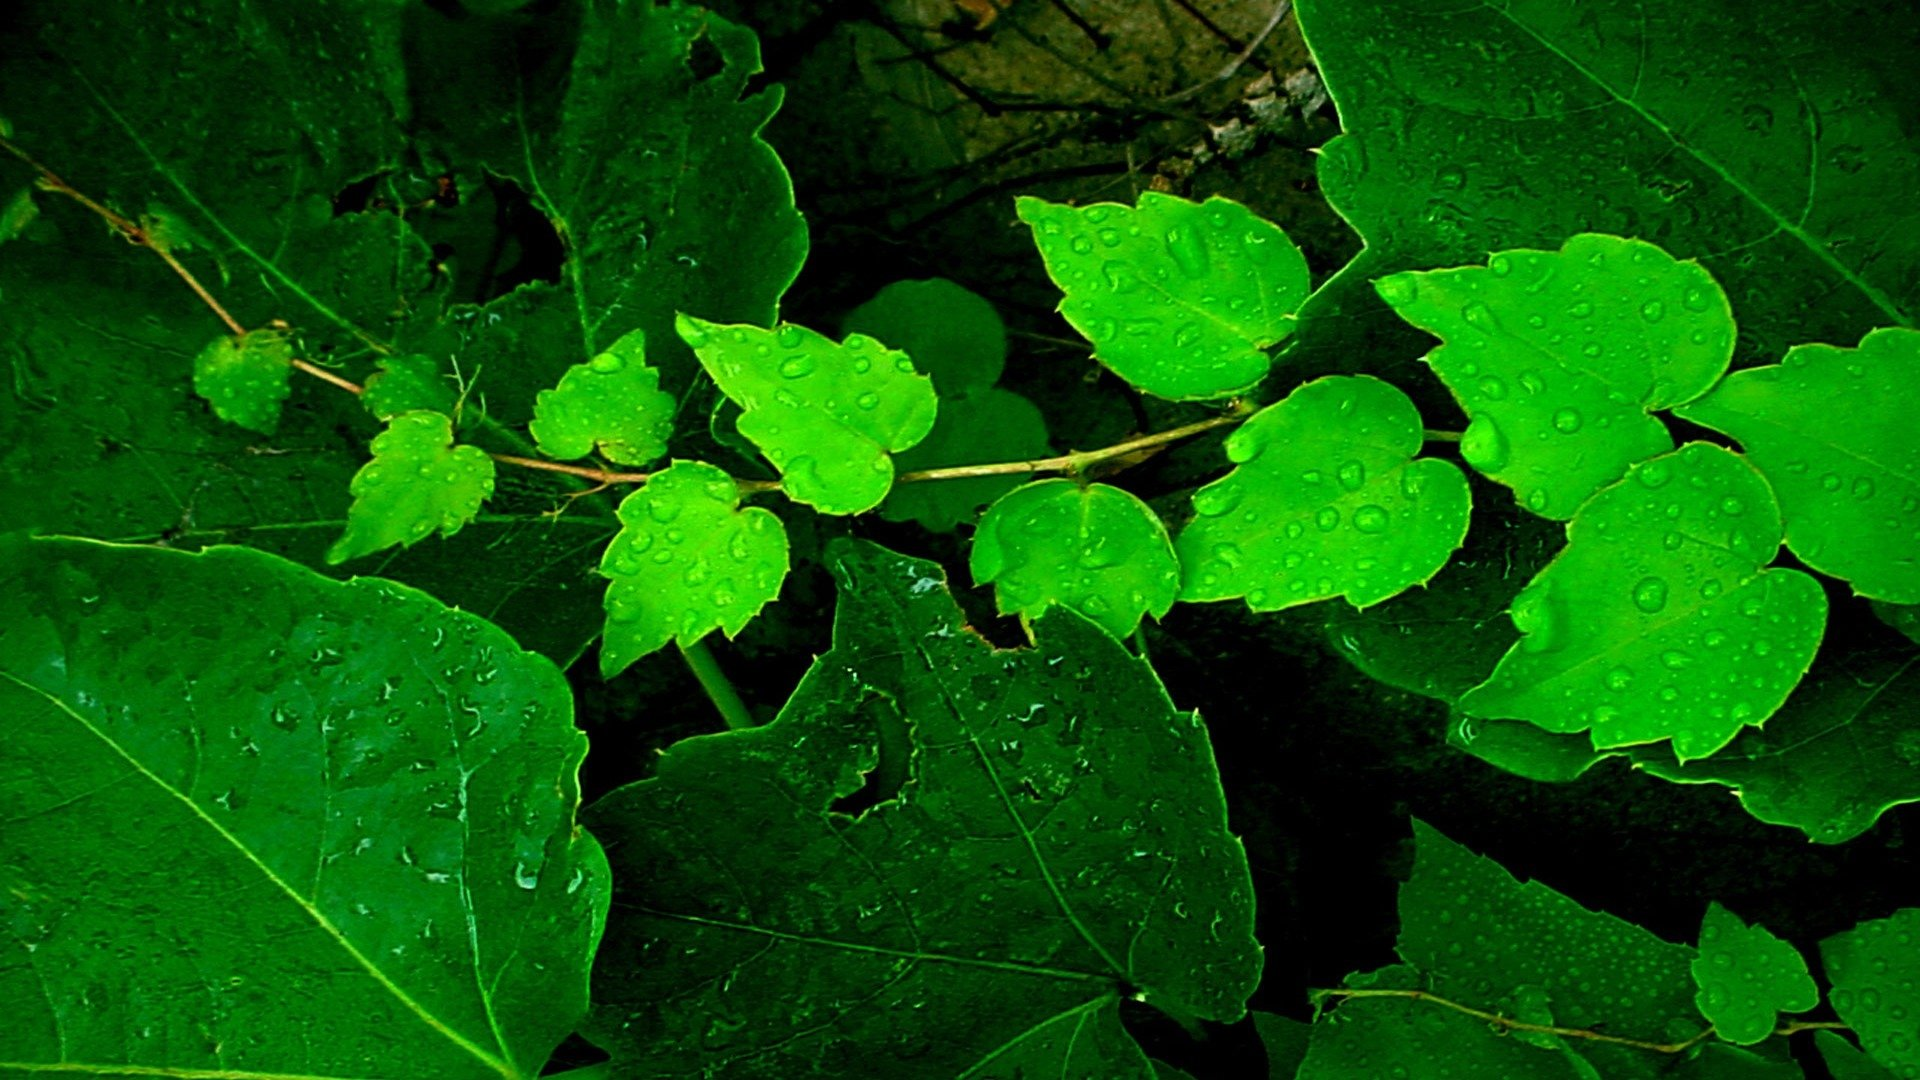 Wet Green Leaves Hd Wallpaper Background Image 1920x1080